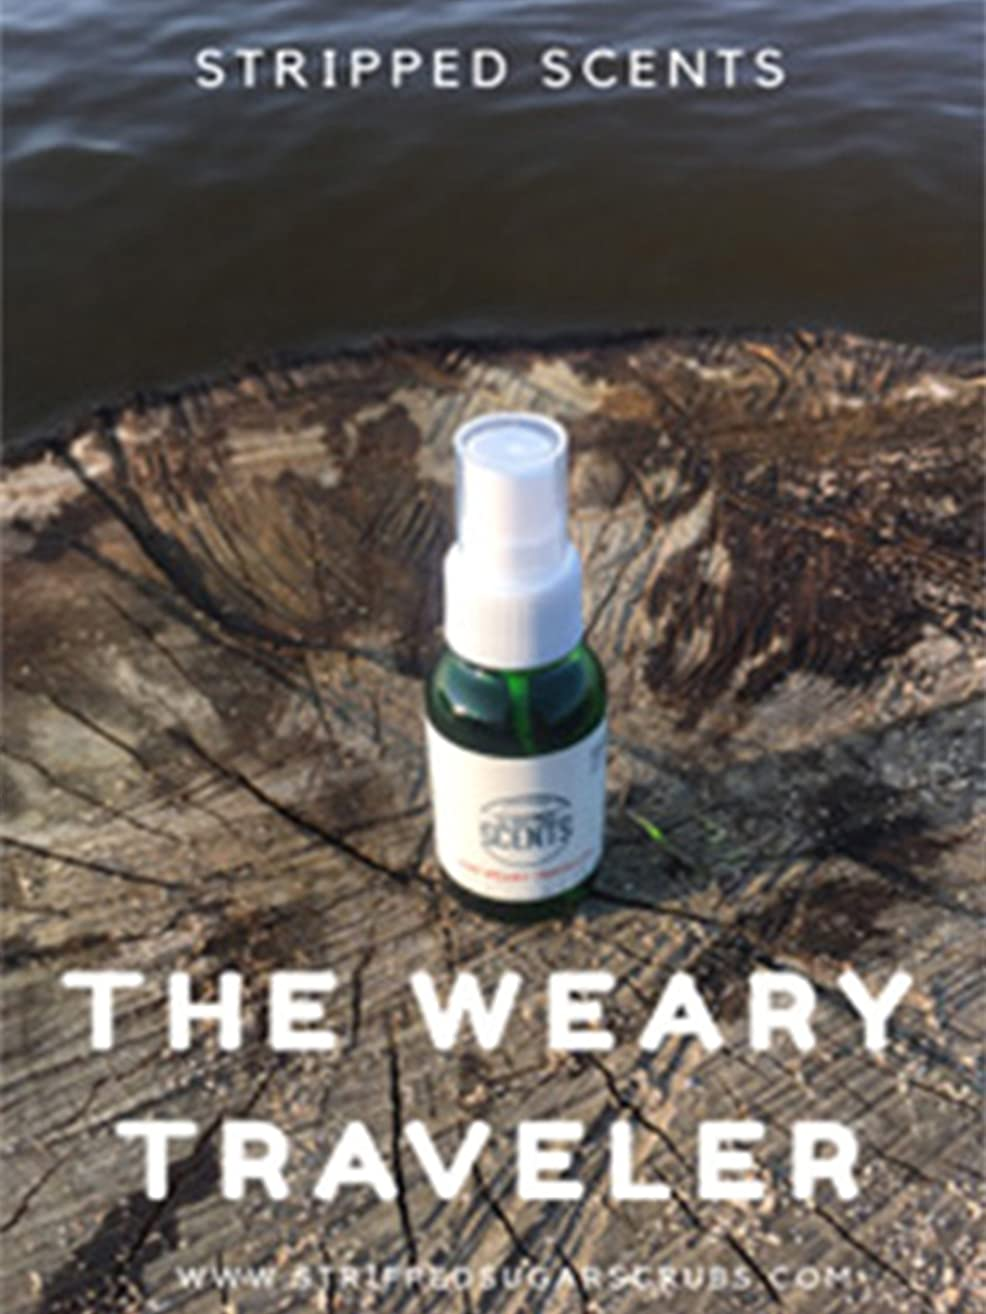 The Weary Traveler! 30ml/1oz Aromatherapy Spray & Body Mist - Stripped Scents For Energy and Mood Lift